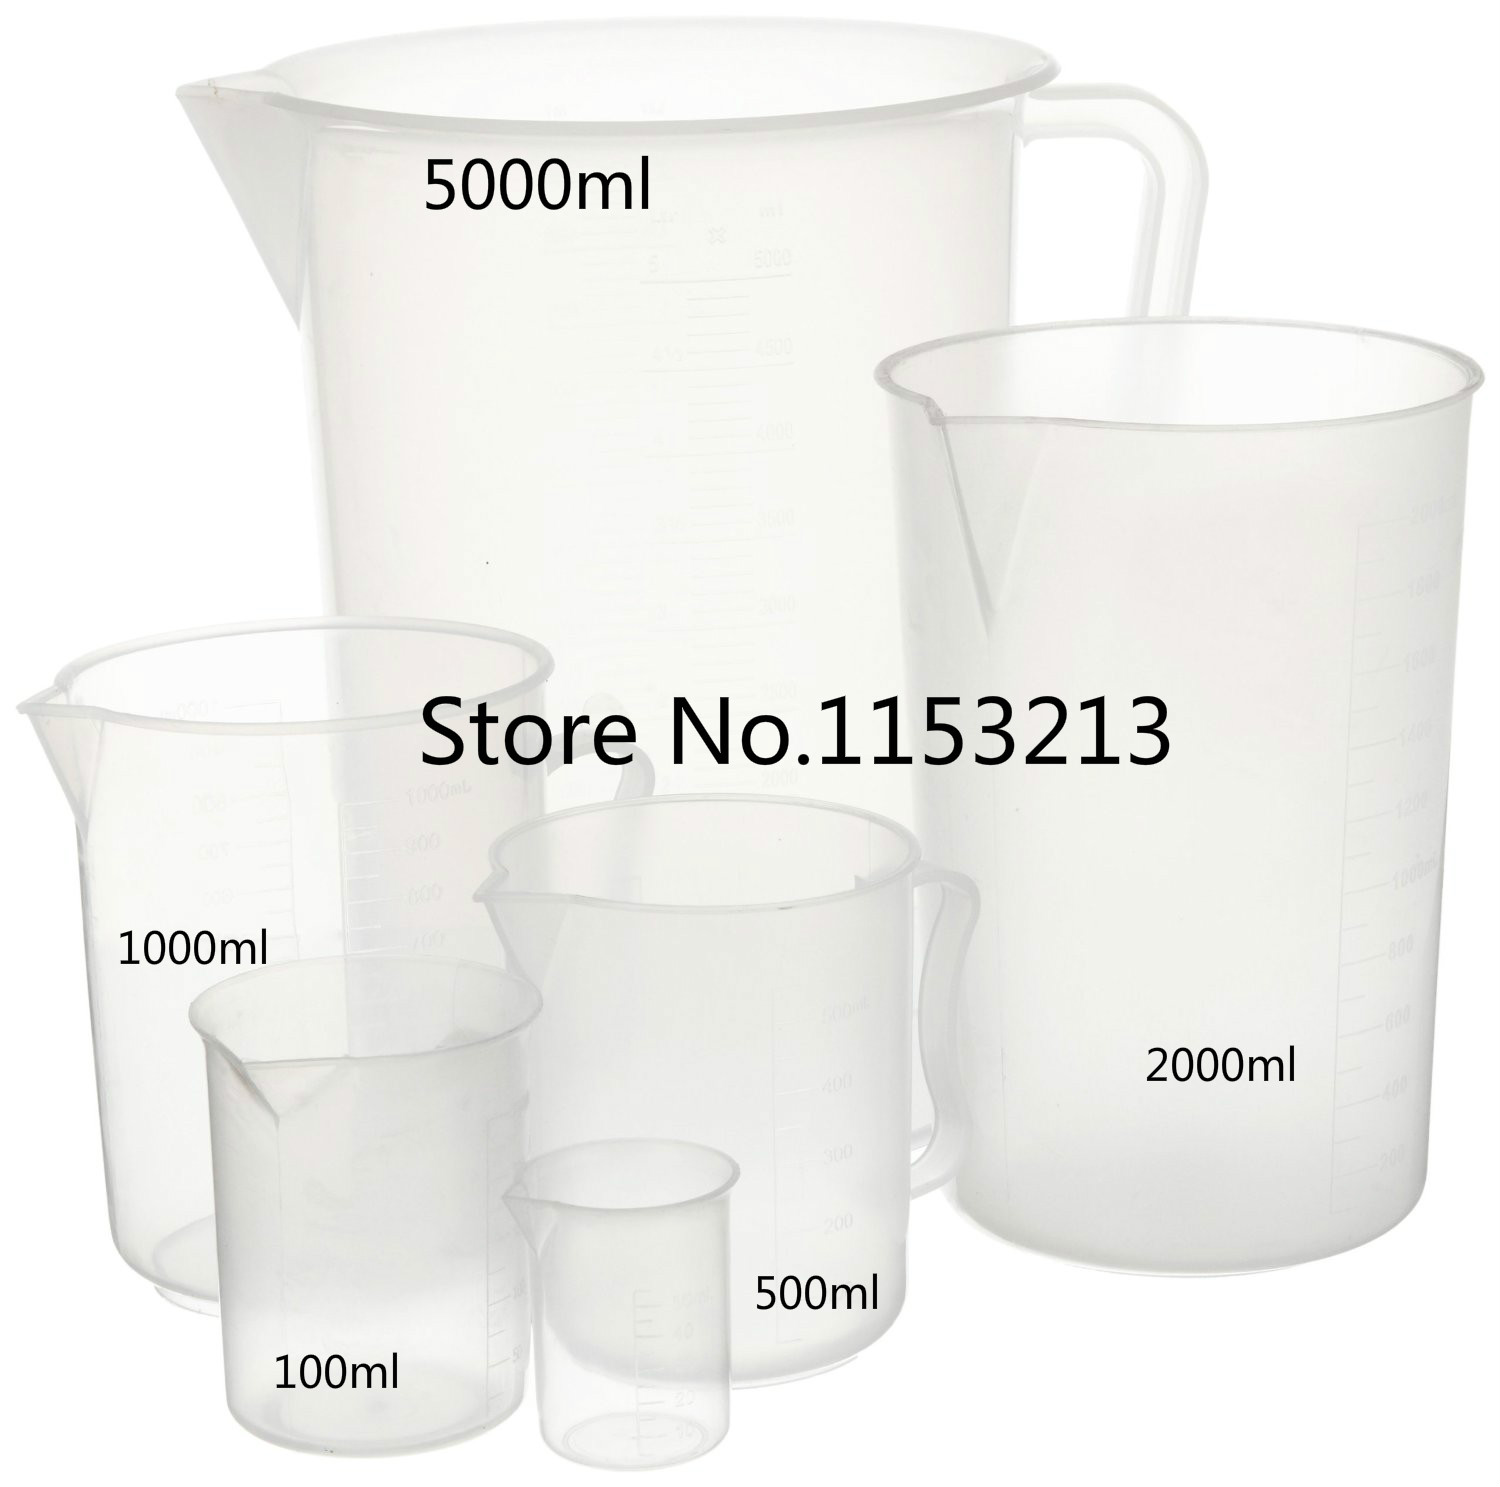 5 pcs/lot 100ml/500ml/1000ml/2000ml/5000ml Capacity Clear Plastic Graduated Laboratory Measuring cup PP cylinder kitchen baking